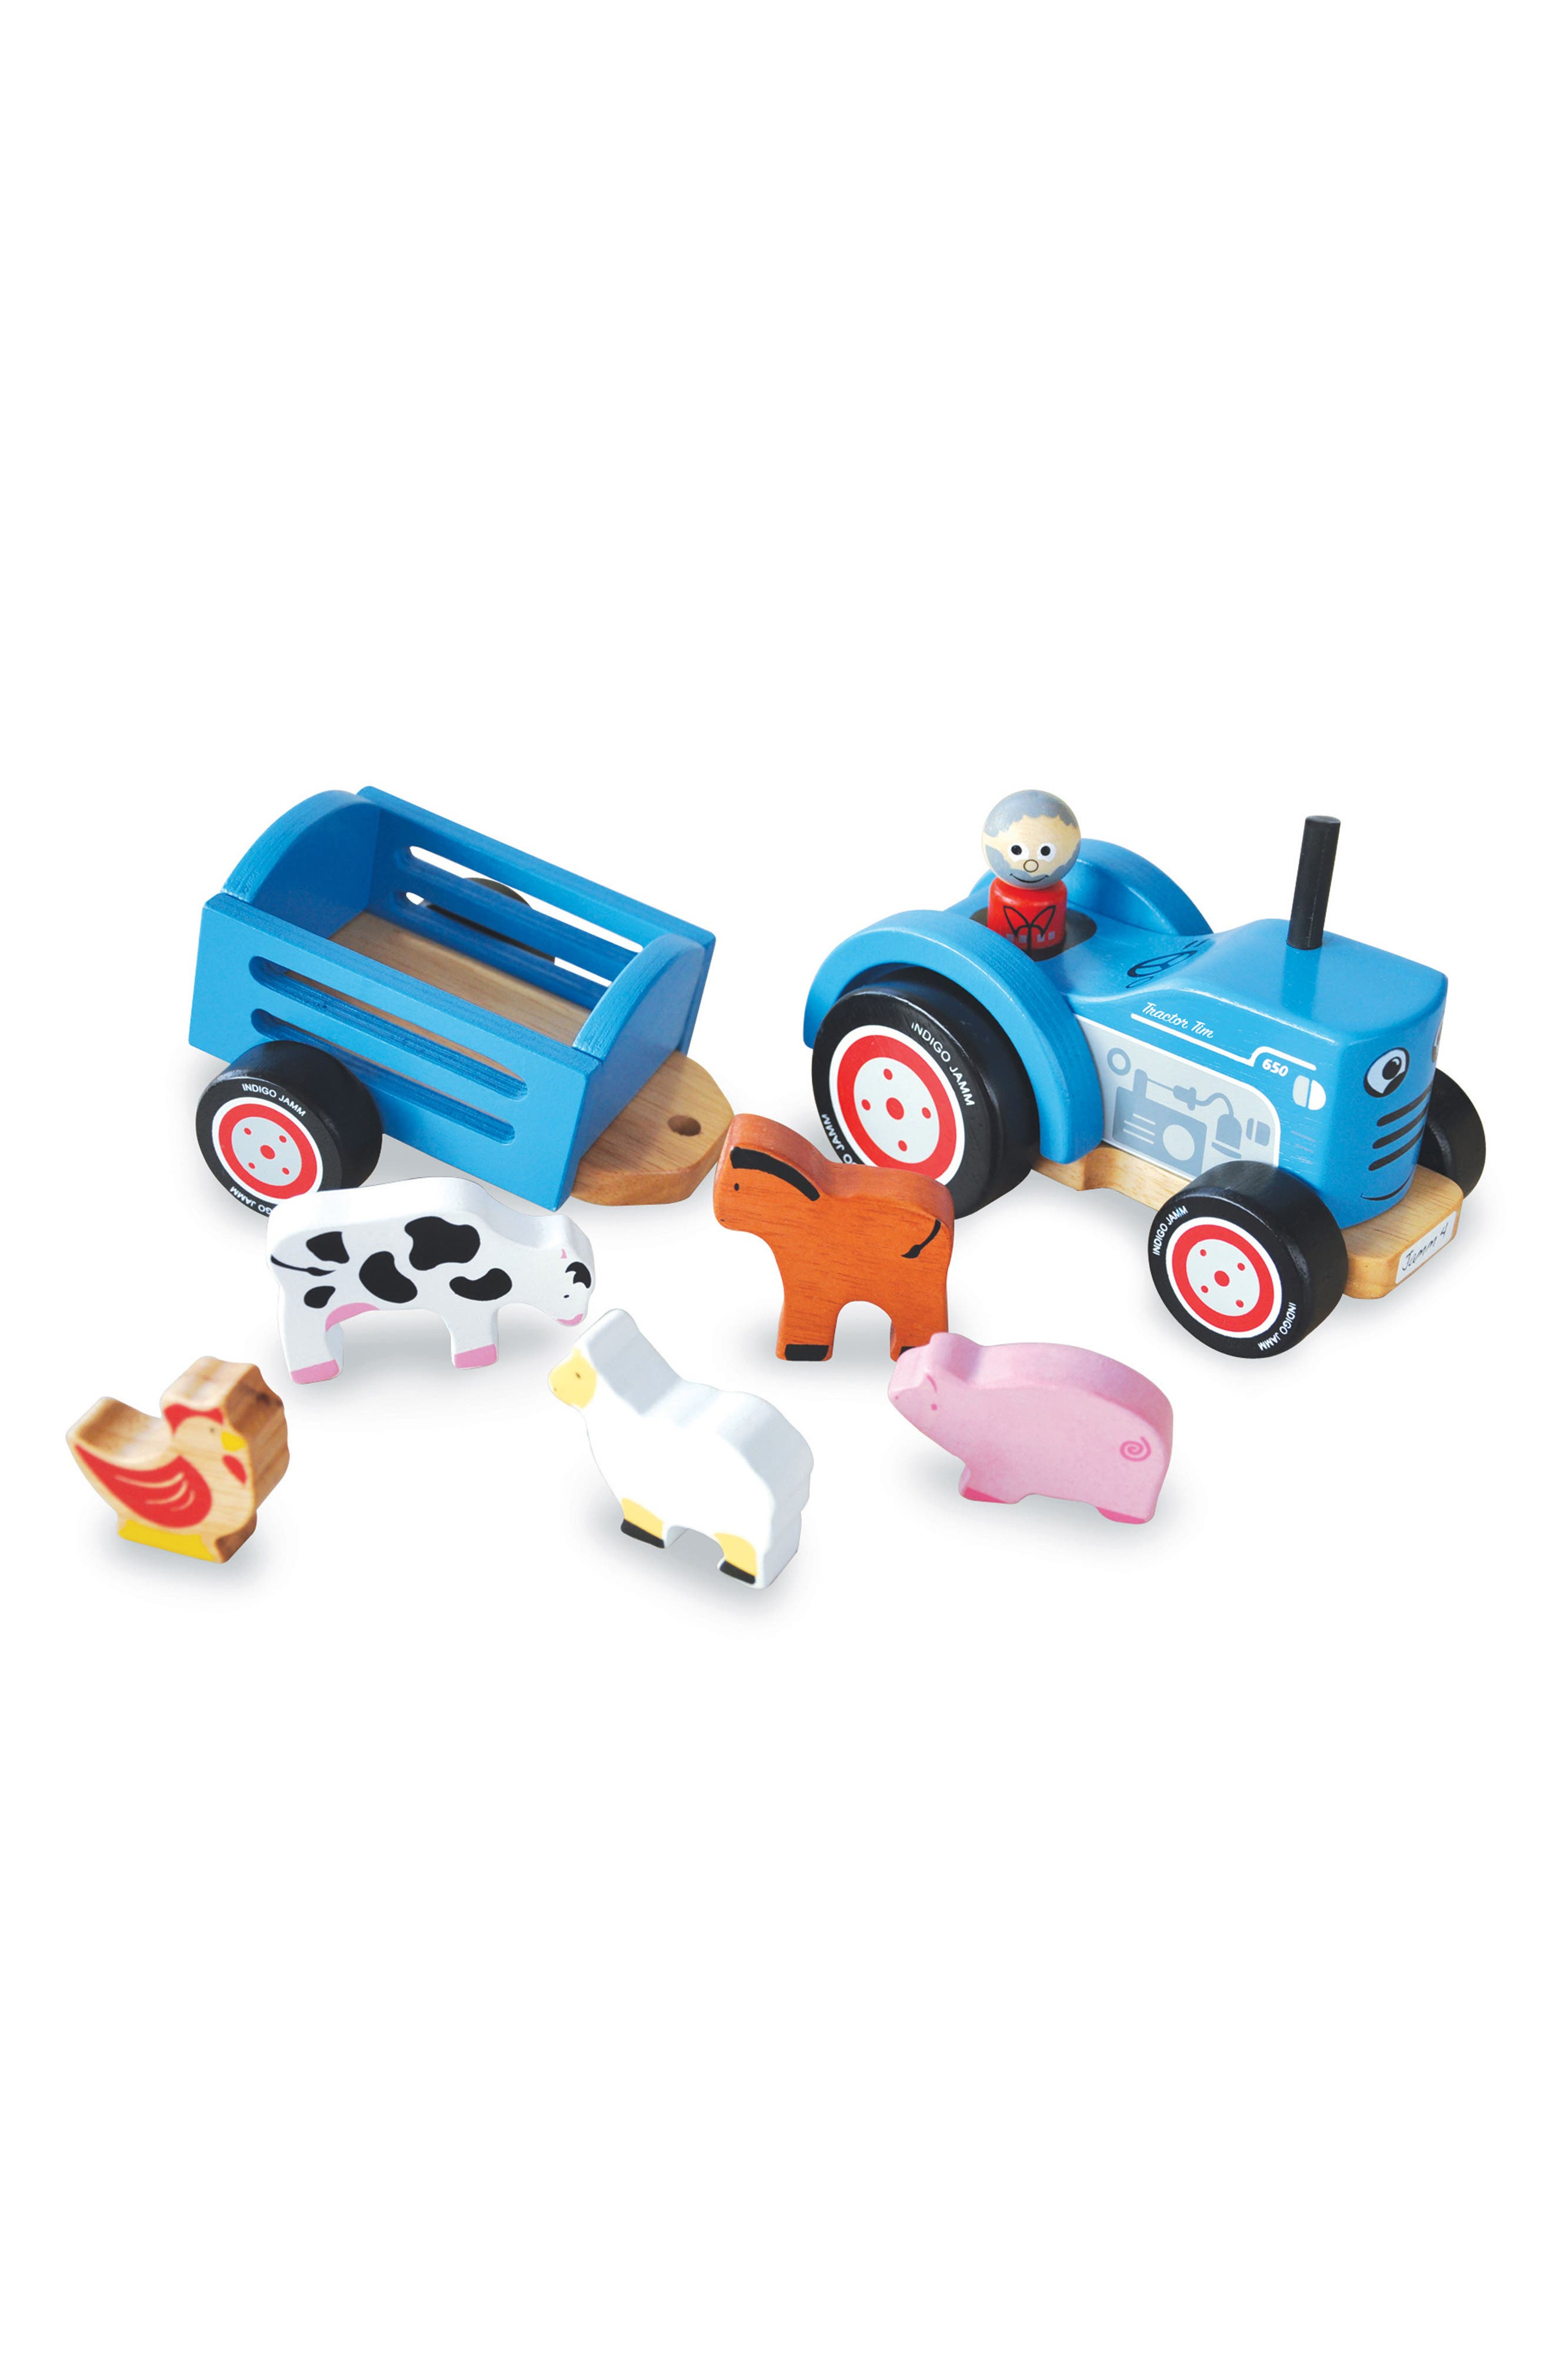 Wooden 8-Piece Farm Tractor Play Set,                             Main thumbnail 1, color,                             400